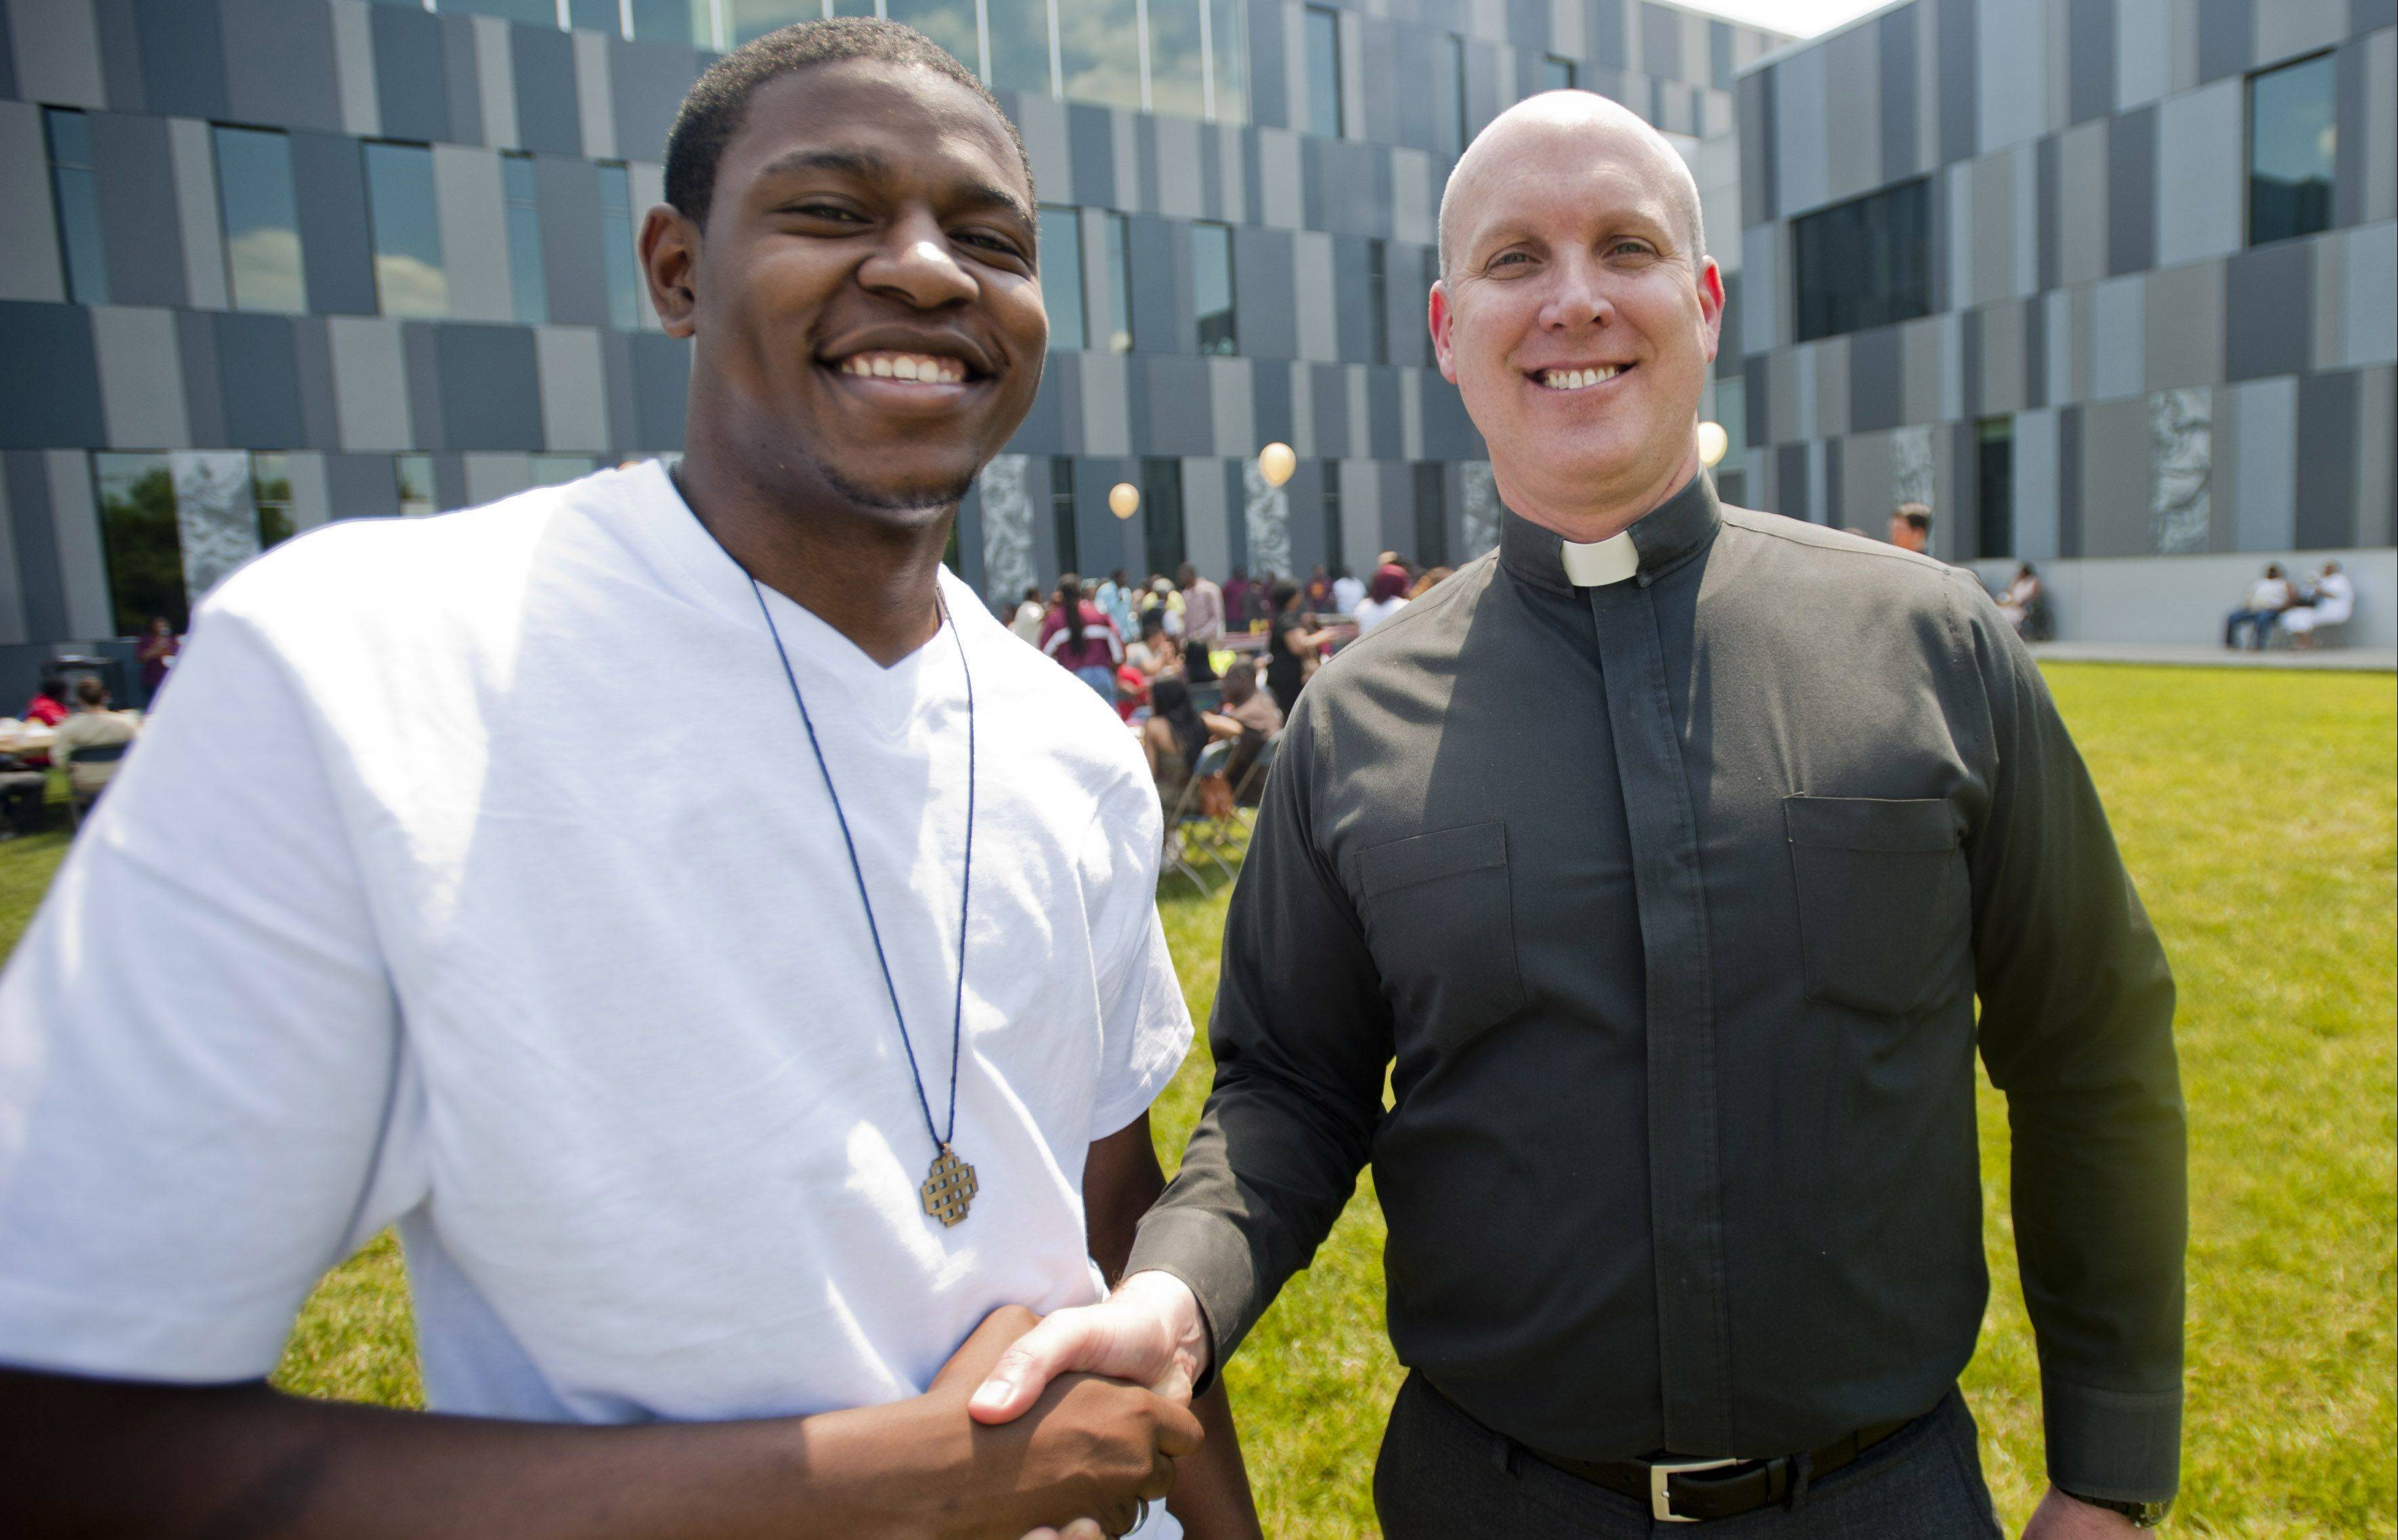 The Rev. Christopher Devron and graduate Stanley Coleman shake hands at the Chicago Jesuit Academy picnic, celebrating the 53 graduates of the school's first class Saturday.